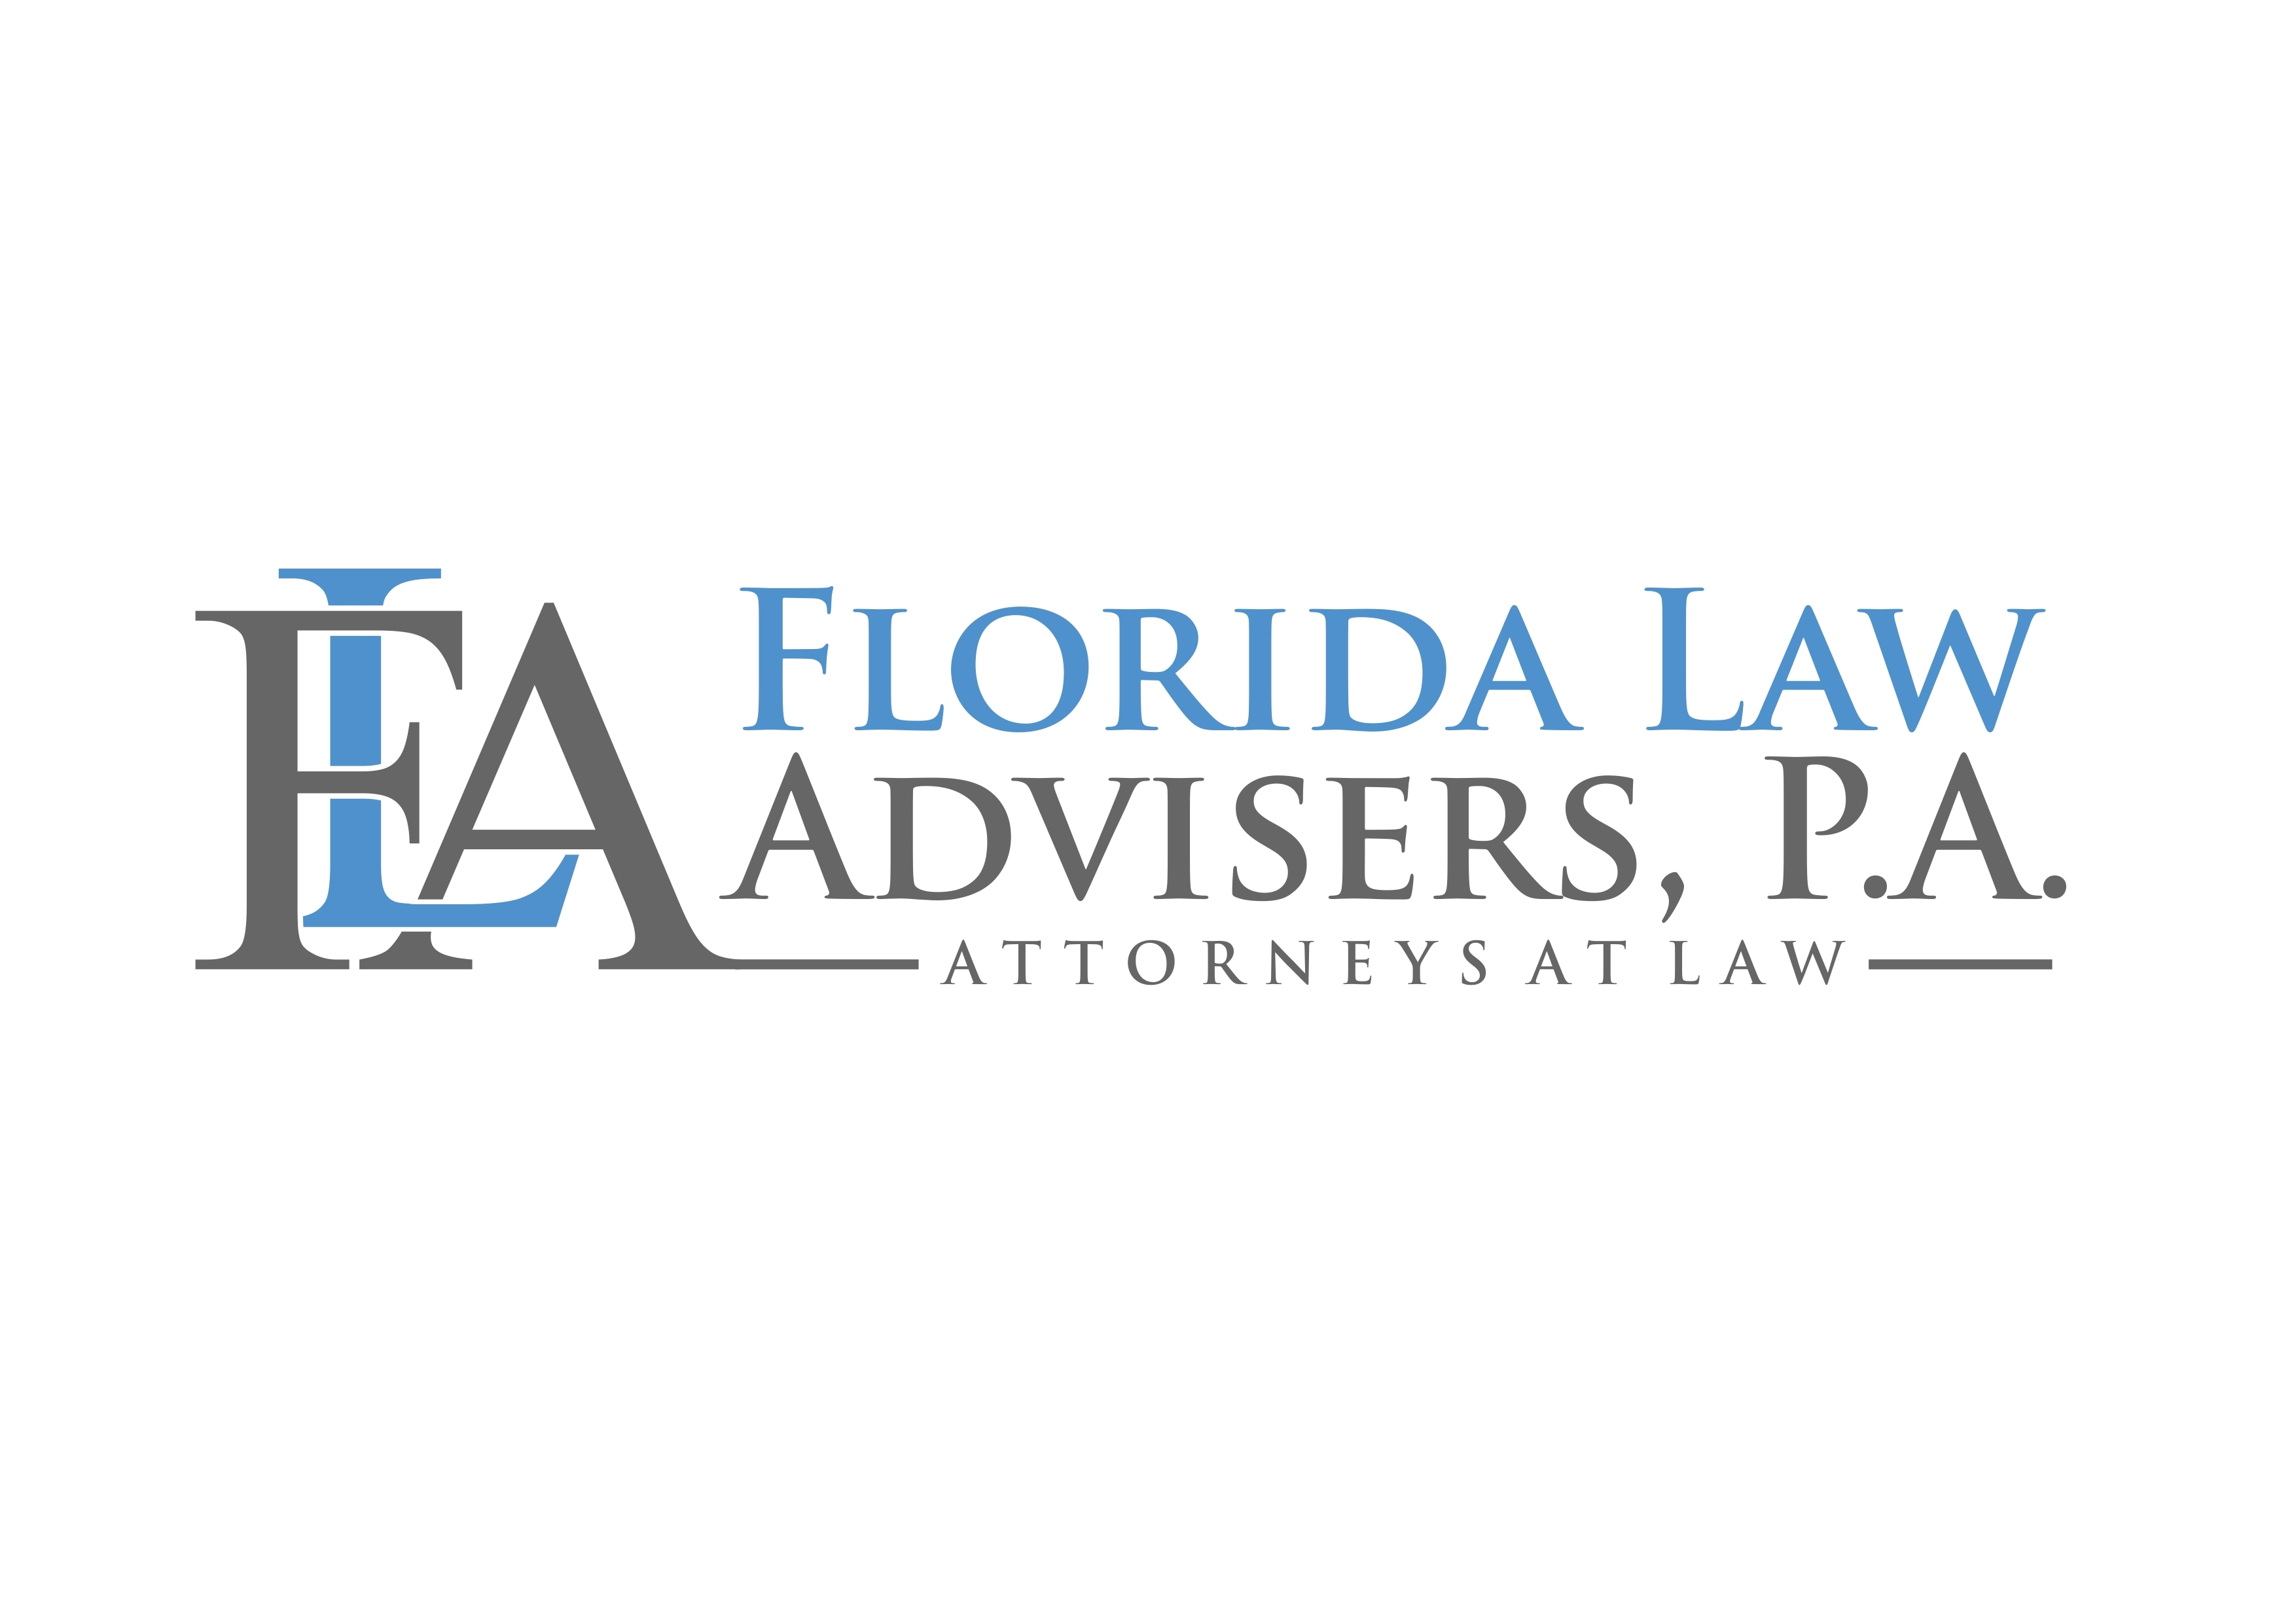 Florida Law Advisers, P.A. - ad image